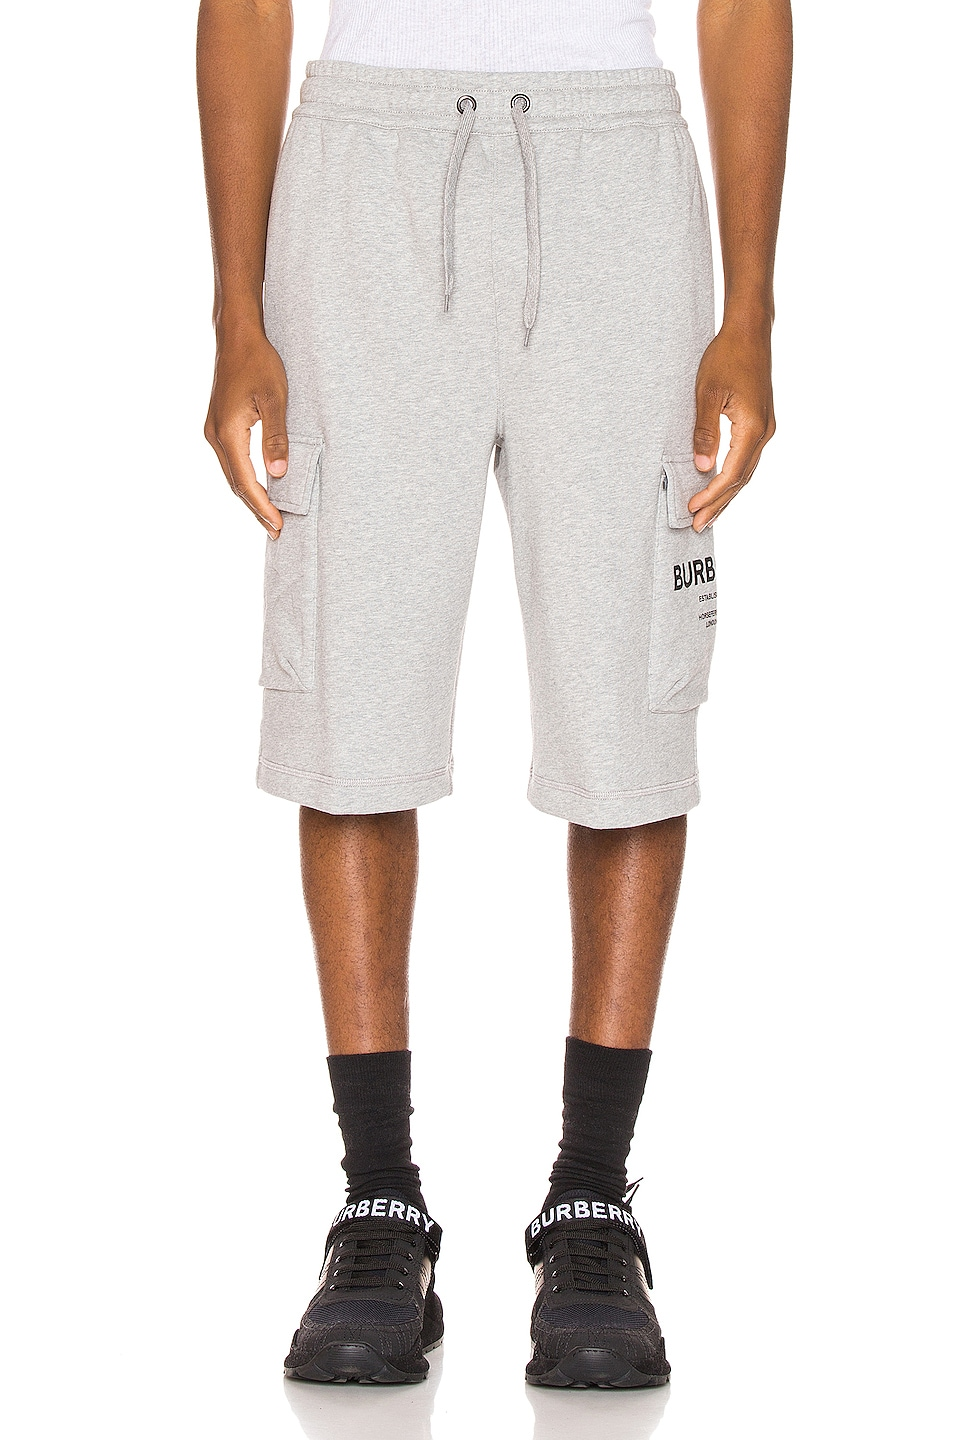 Image 2 of Burberry Ailford Track Shorts in Pale Grey Melange